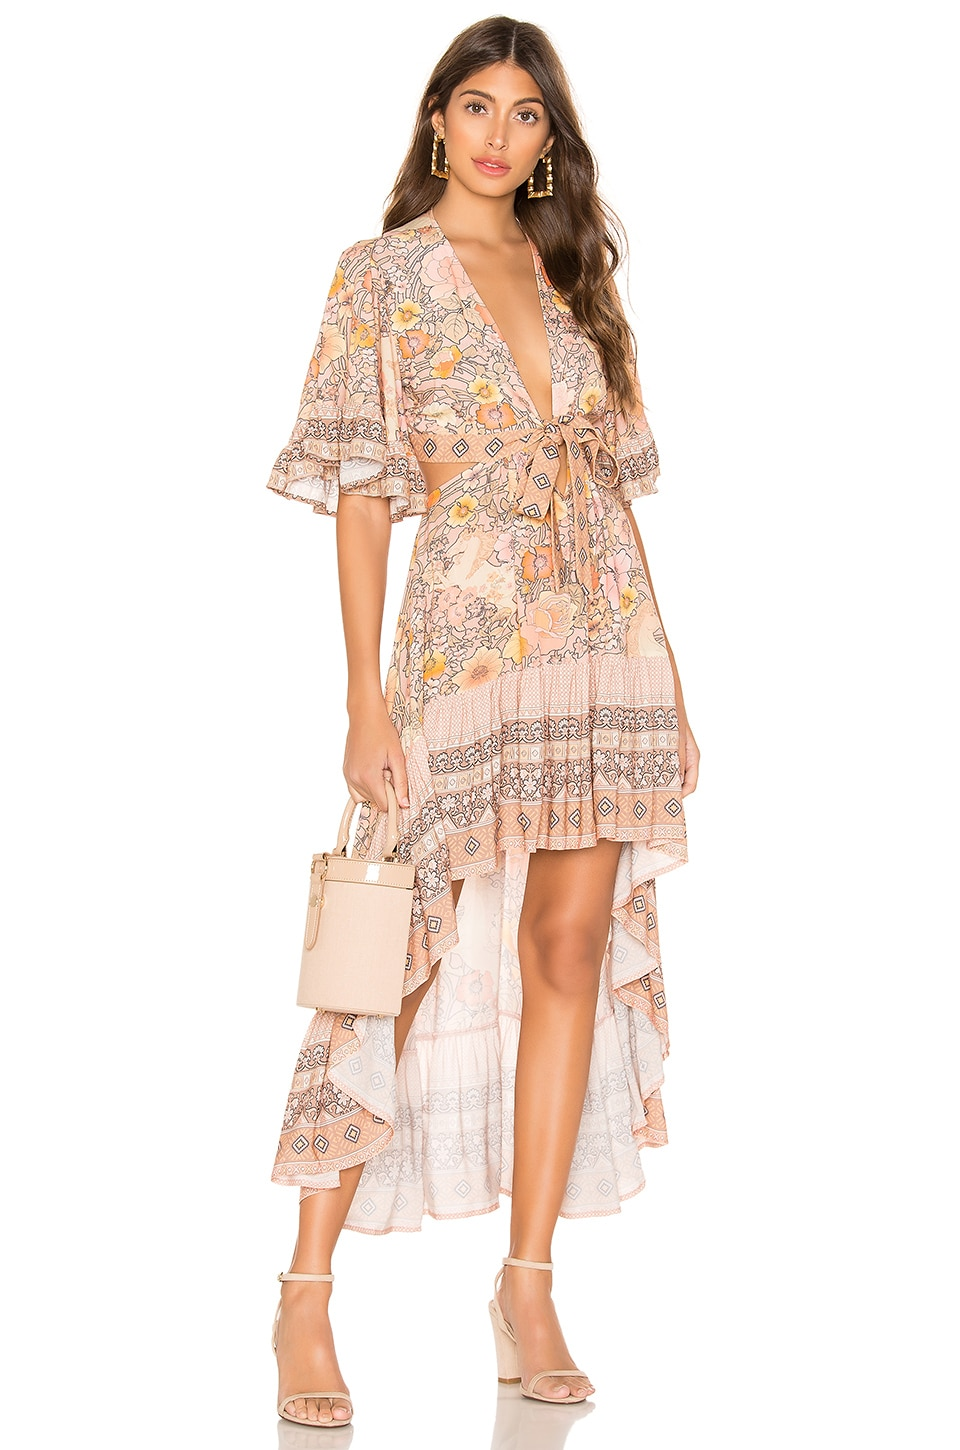 Spell & The Gypsy Collective x REVOLVE Amethyst Bambi Dress in Blush